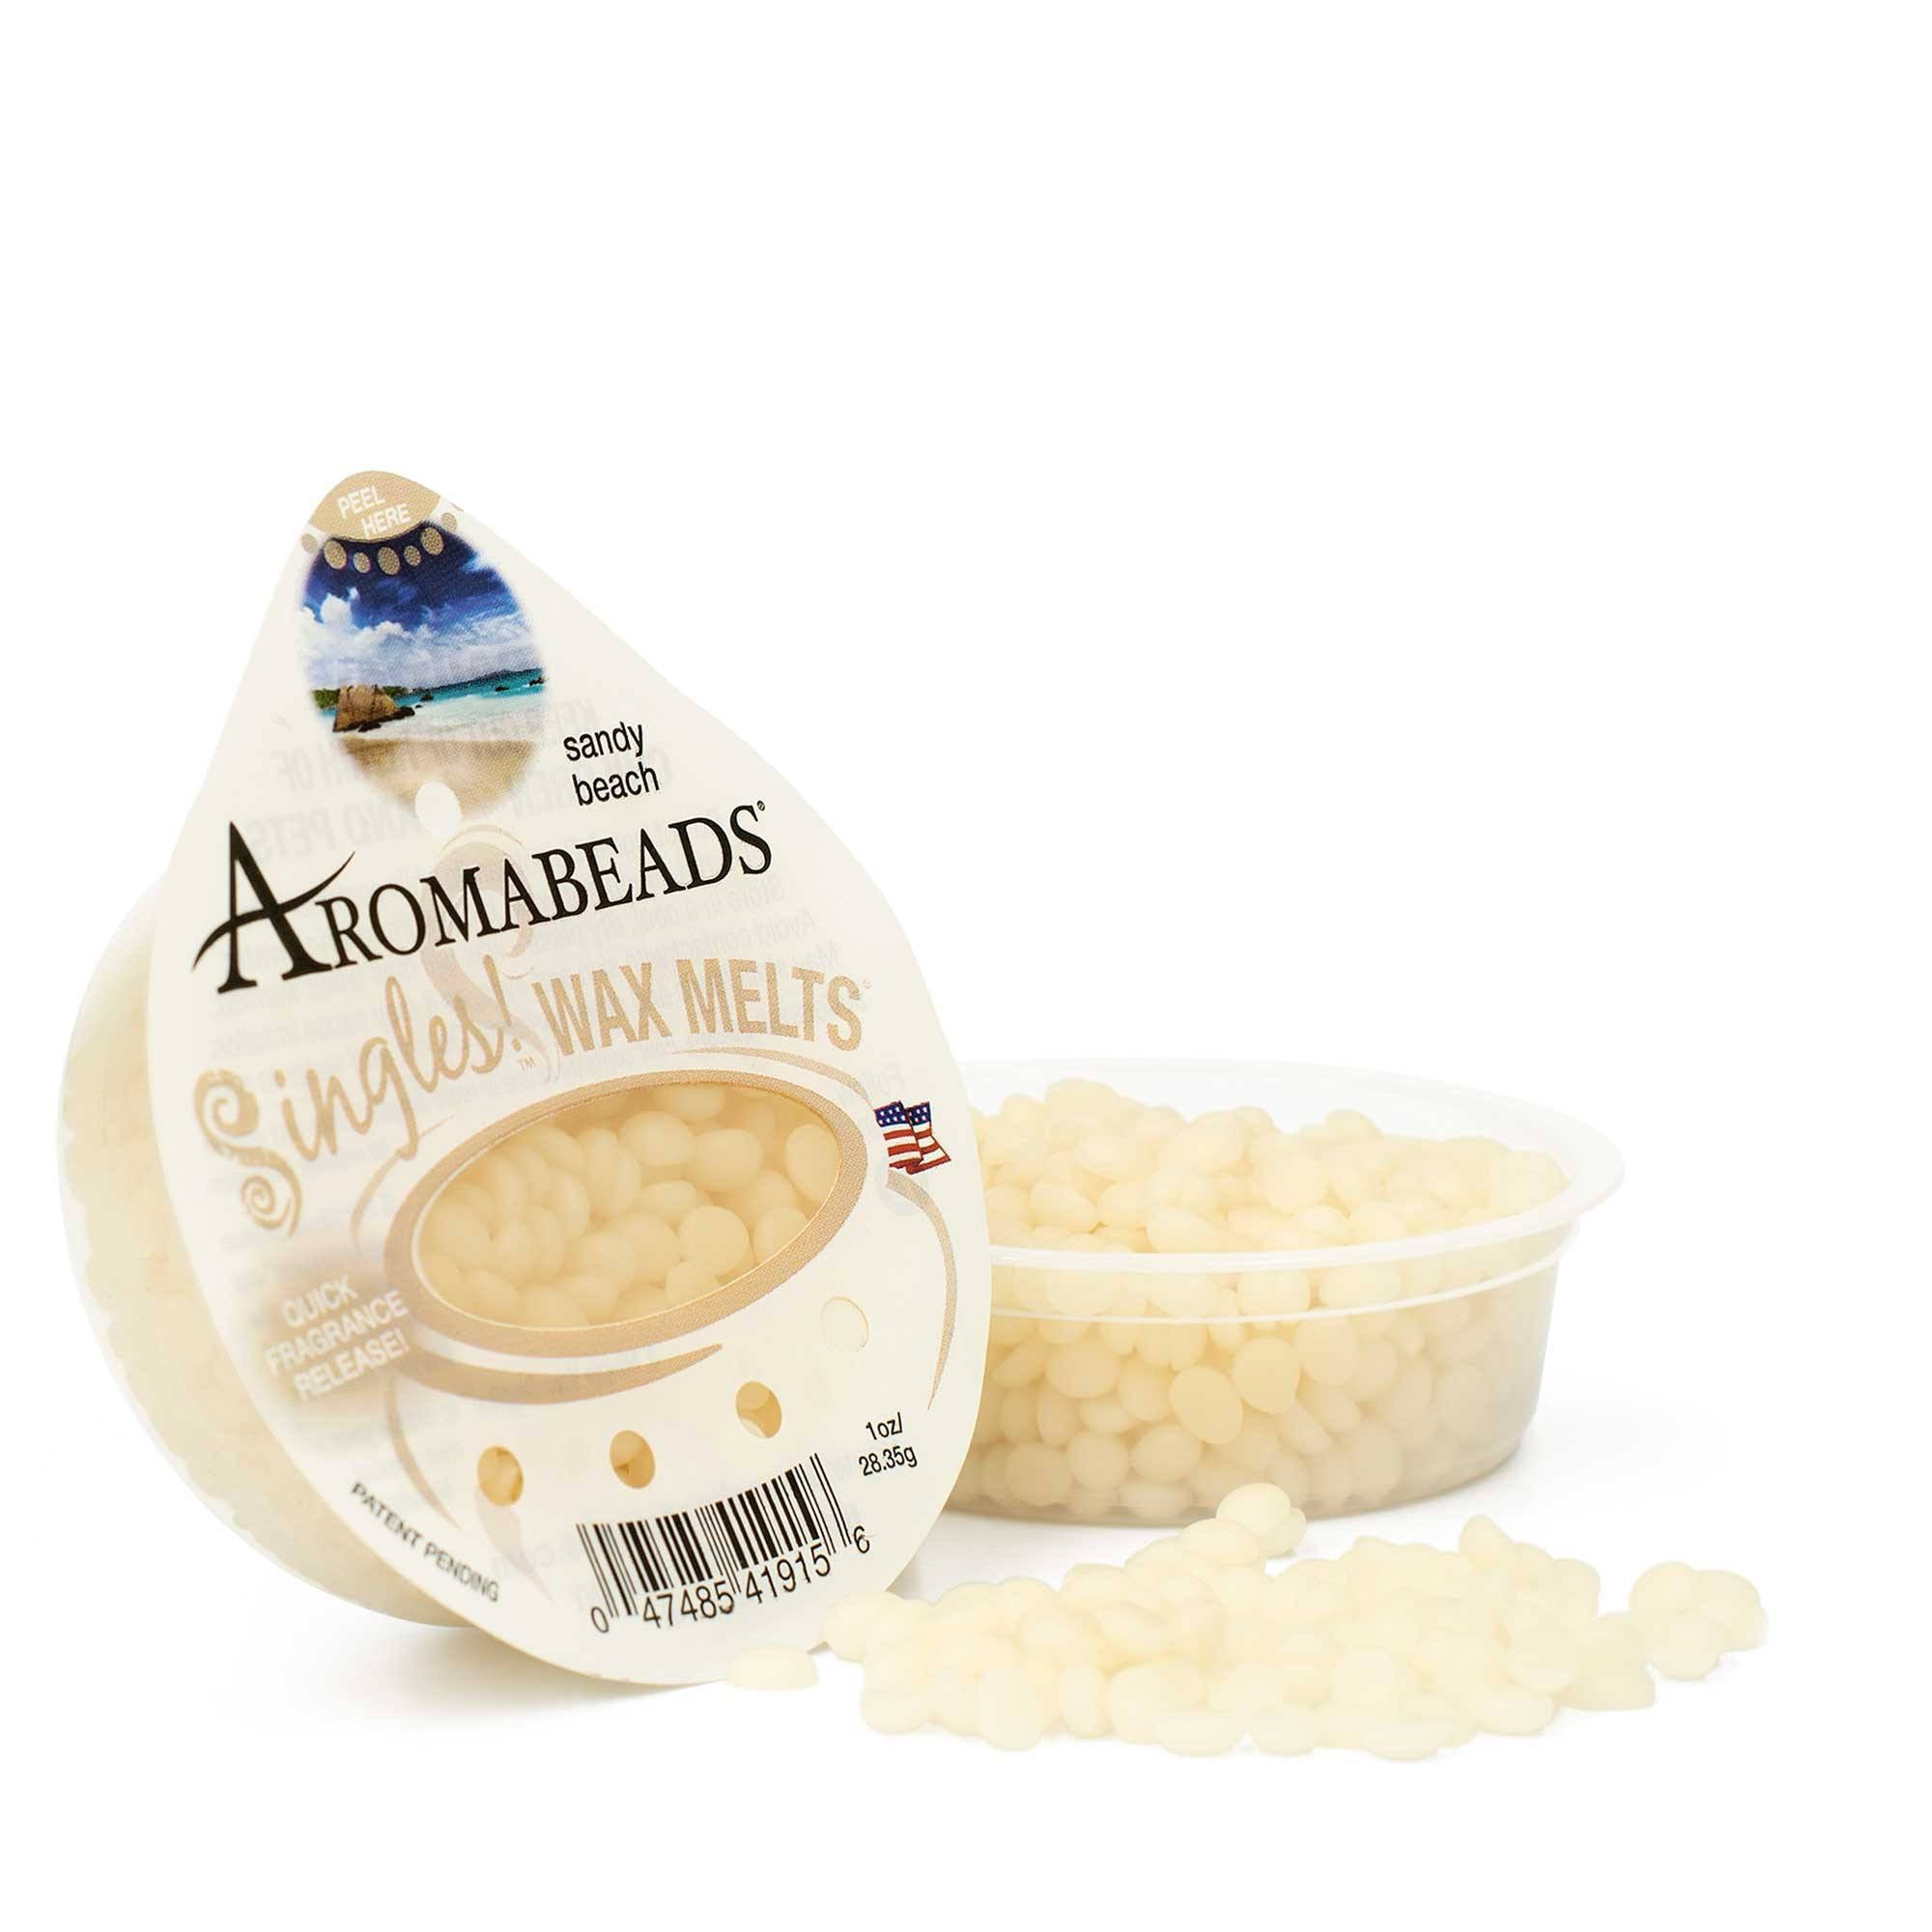 Aromabeads Singles Sandy Beach Scented Wax Melts - Candlemart.com - 1